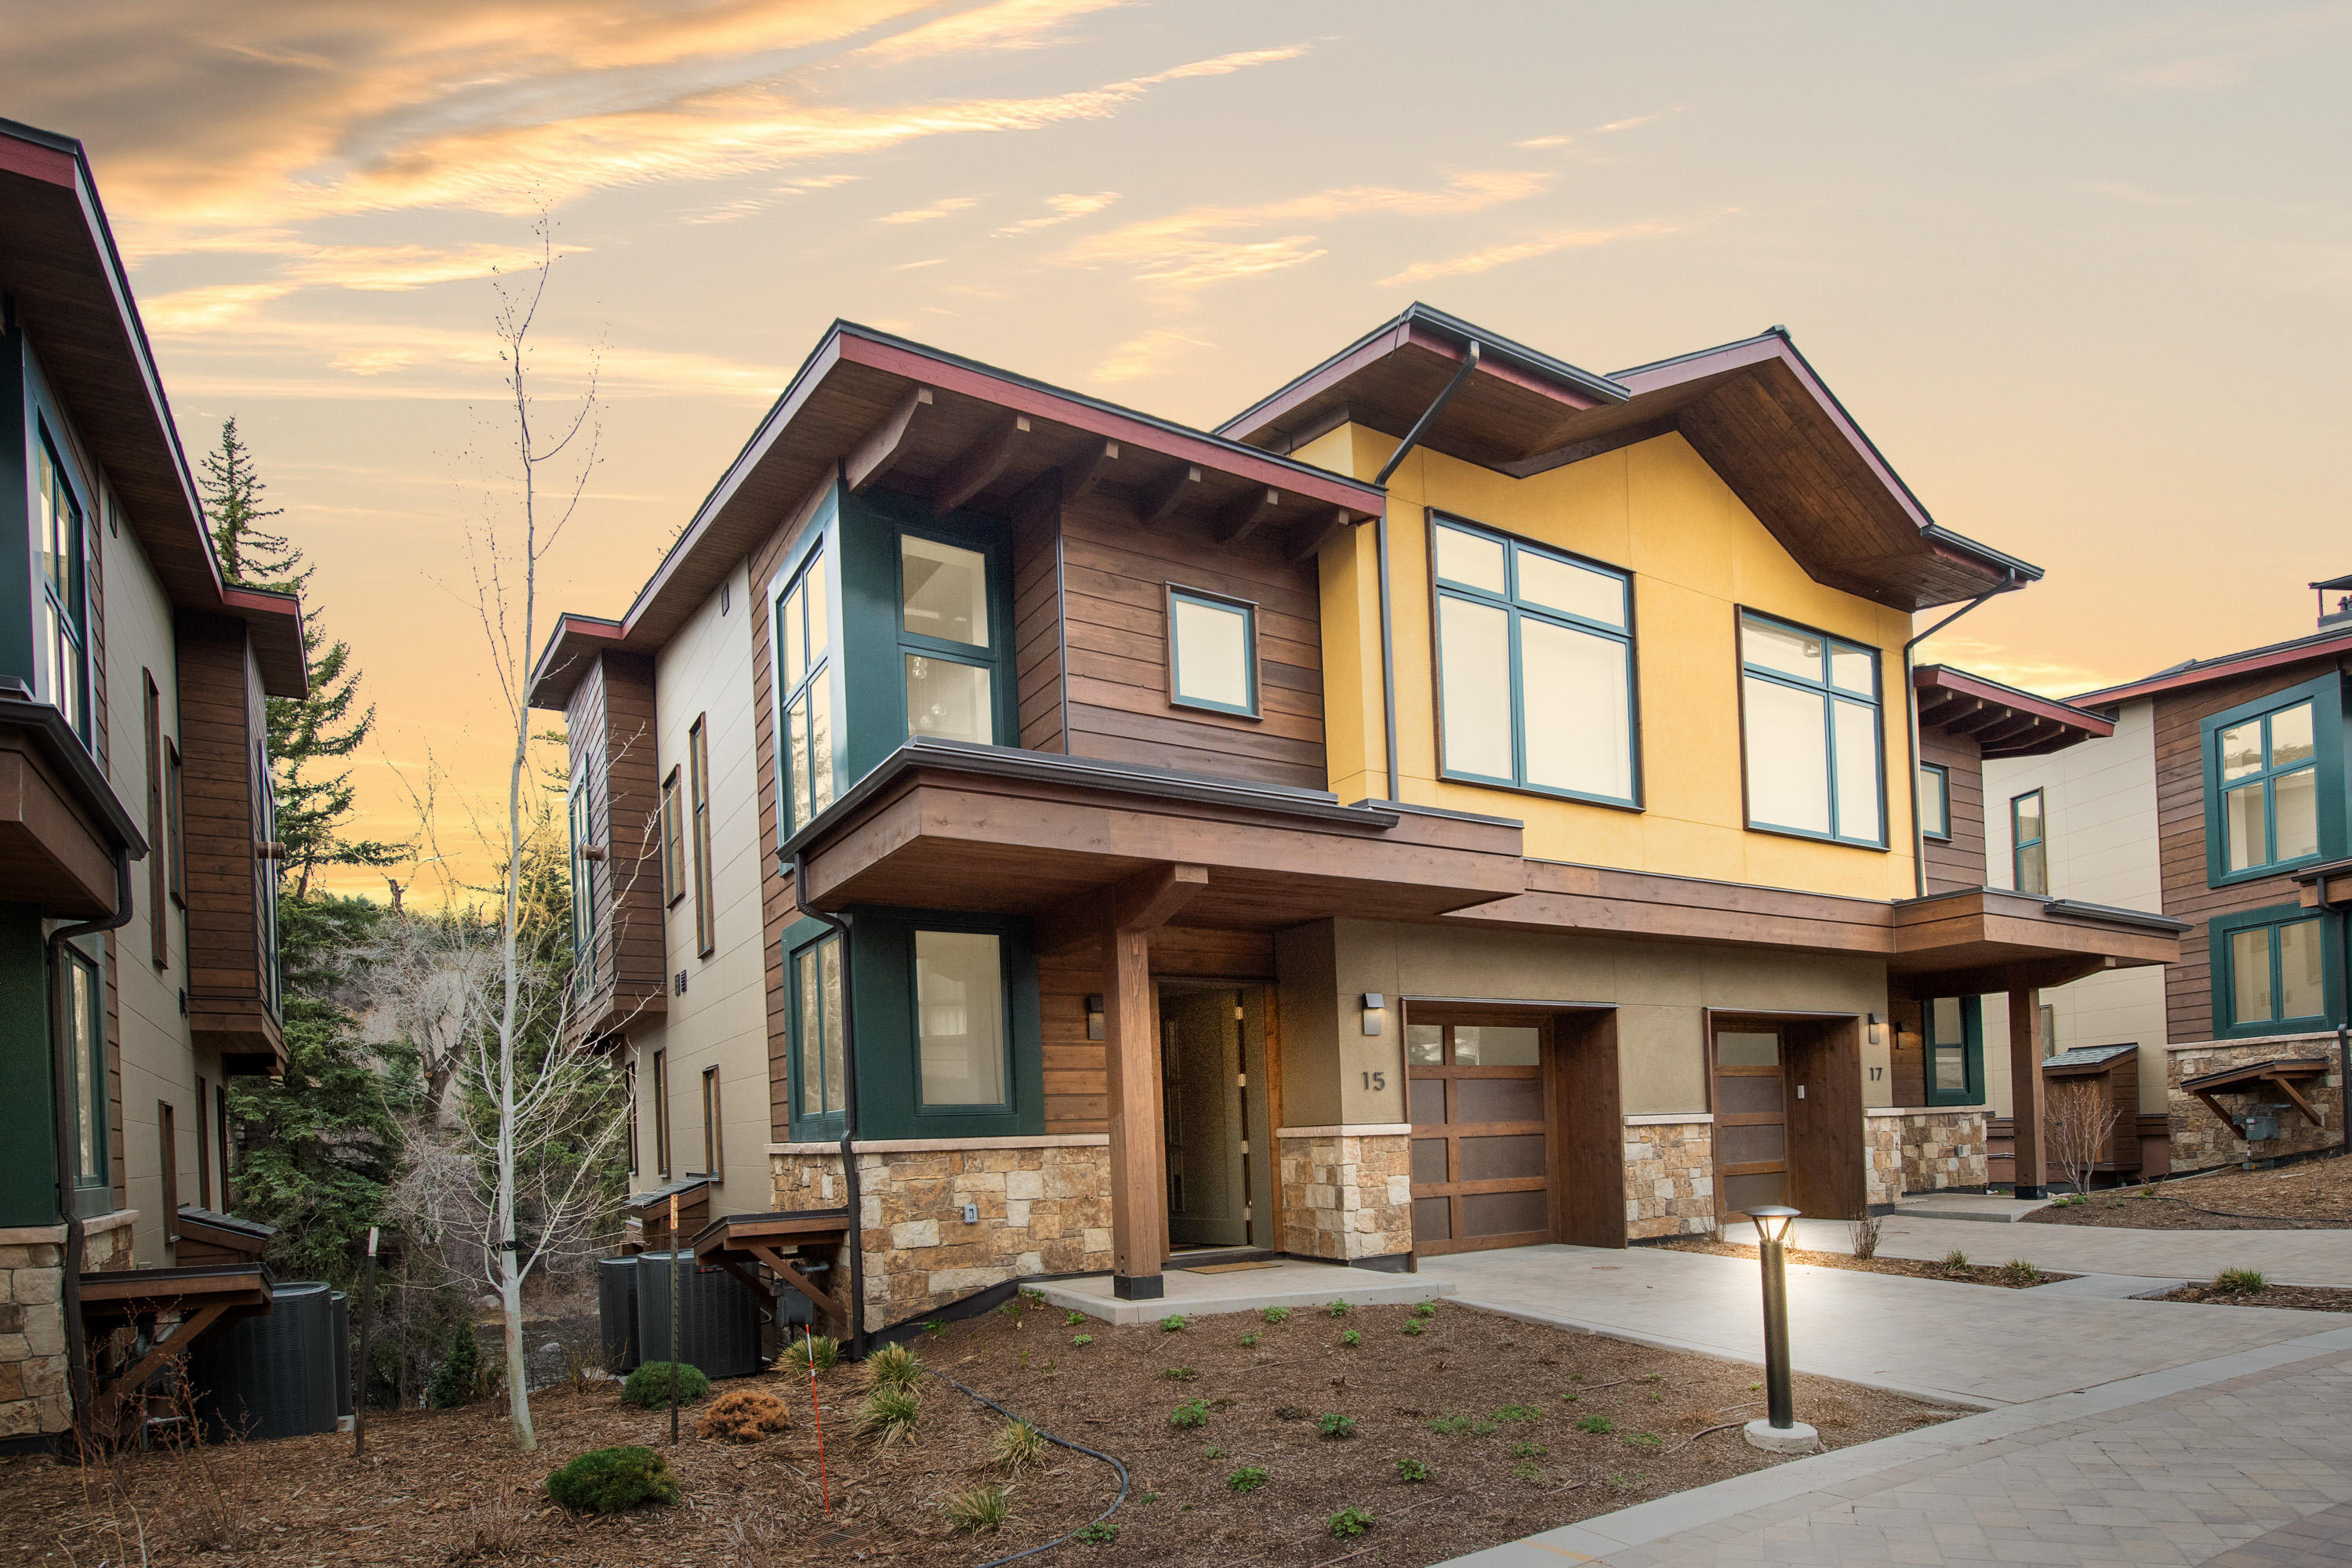 Step into the essence of mountain contemporary elegance in this 4-bedroom, 3-bathroom townhome.  Located in the sought after Riverfront Village, just steps to the bike path and a short walk to the Riverfront Gondola. Designed by Zehren Architects Riverfront Townhome #15 was constructed by East West Partners in 2018.  The residence features iconic Beaver Creek views and overlooks the Eagle River.  Spacious living, dining and kitchen areas, primary and secondary suites with South views.  Walls of windows throughout the home offer spectacular views and natural light.  Beautiful high end finishes feature hardwood flooring, Duralux counters, slab-style cabinets, Bosch appliances, electronic shades, master steam shower and lower level walk out patio.  As an owner, you will enjoy the amenities of the Westins world-class spa, athletic club, heated outdoor lap pool and infinity spa pools, ski valet and shuttle service.  In addition, you will have access to the private amenities at the Riverfront Lodge including an infinity spa pool, outdoor fire pit and family game room.  Live privately in the heart of the valley with all the access to skiing Vail and Beaver Creek Mountains in winter and Avon Lake, the Eagle River and the festivals, farmers markets in summer.